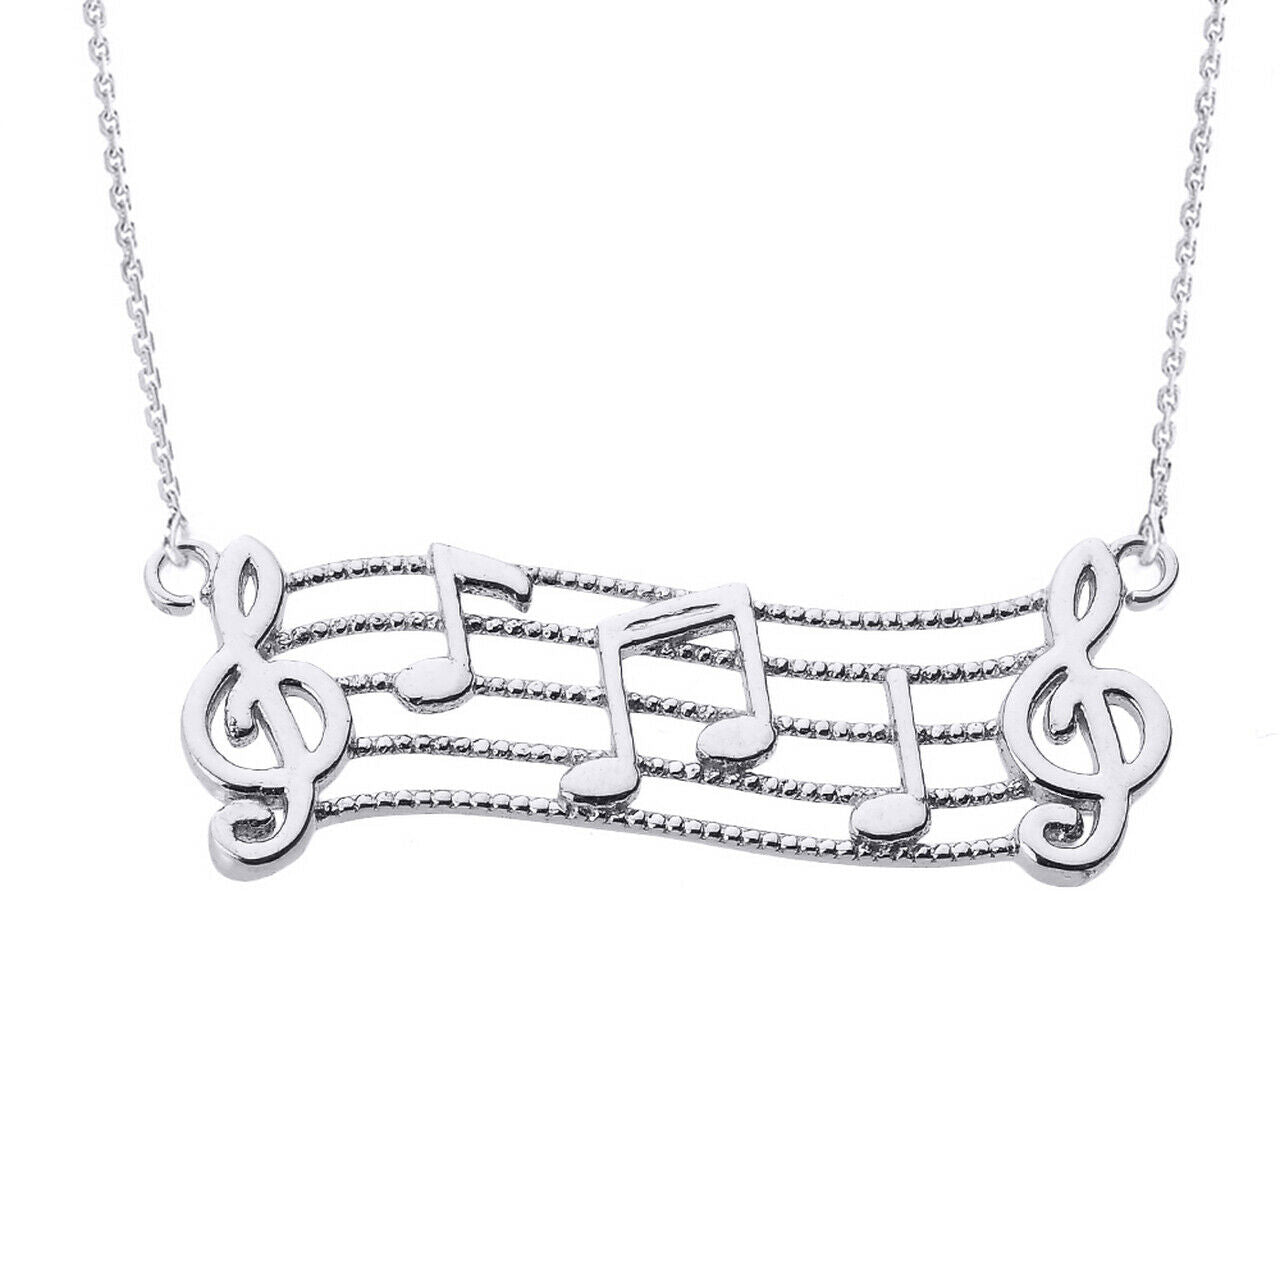 925 Sterling Silver Treble Clef with Musical Notes Pendant Necklace Made in USA